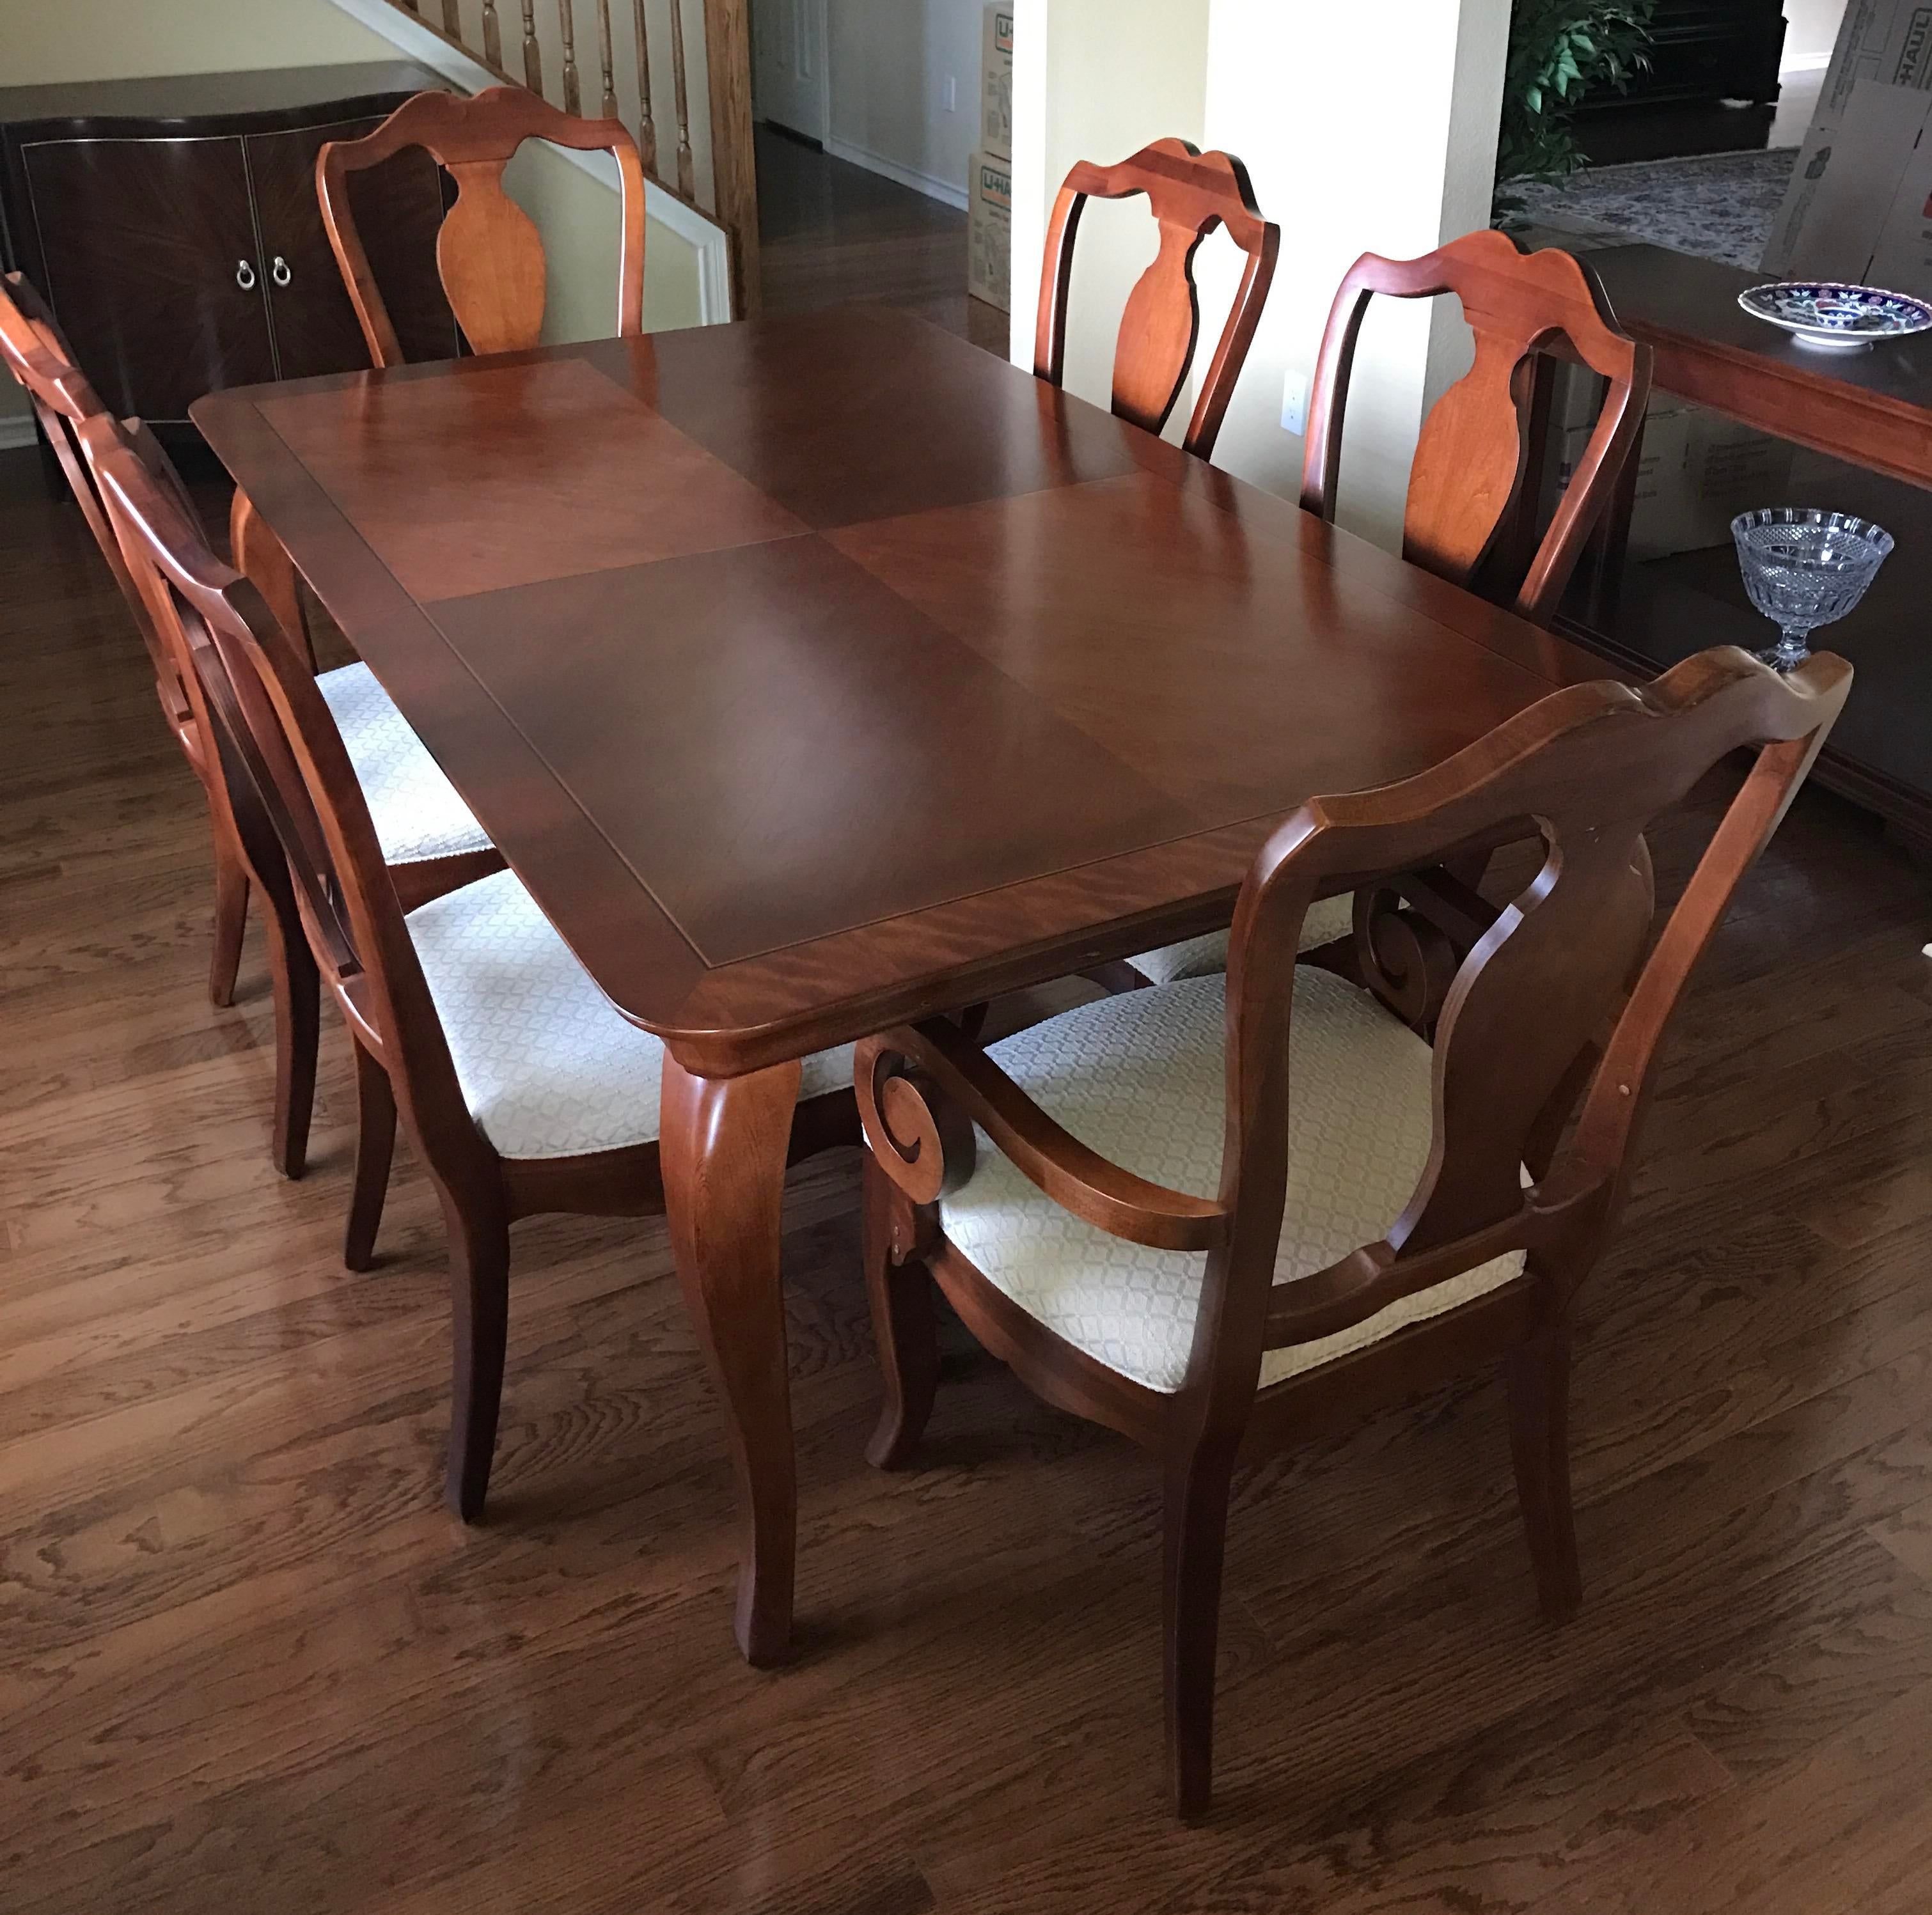 Attirant Traditional Thomasville Dining Table U0026 Chairs W/ Leaves For Sale   Image 3  Of 10